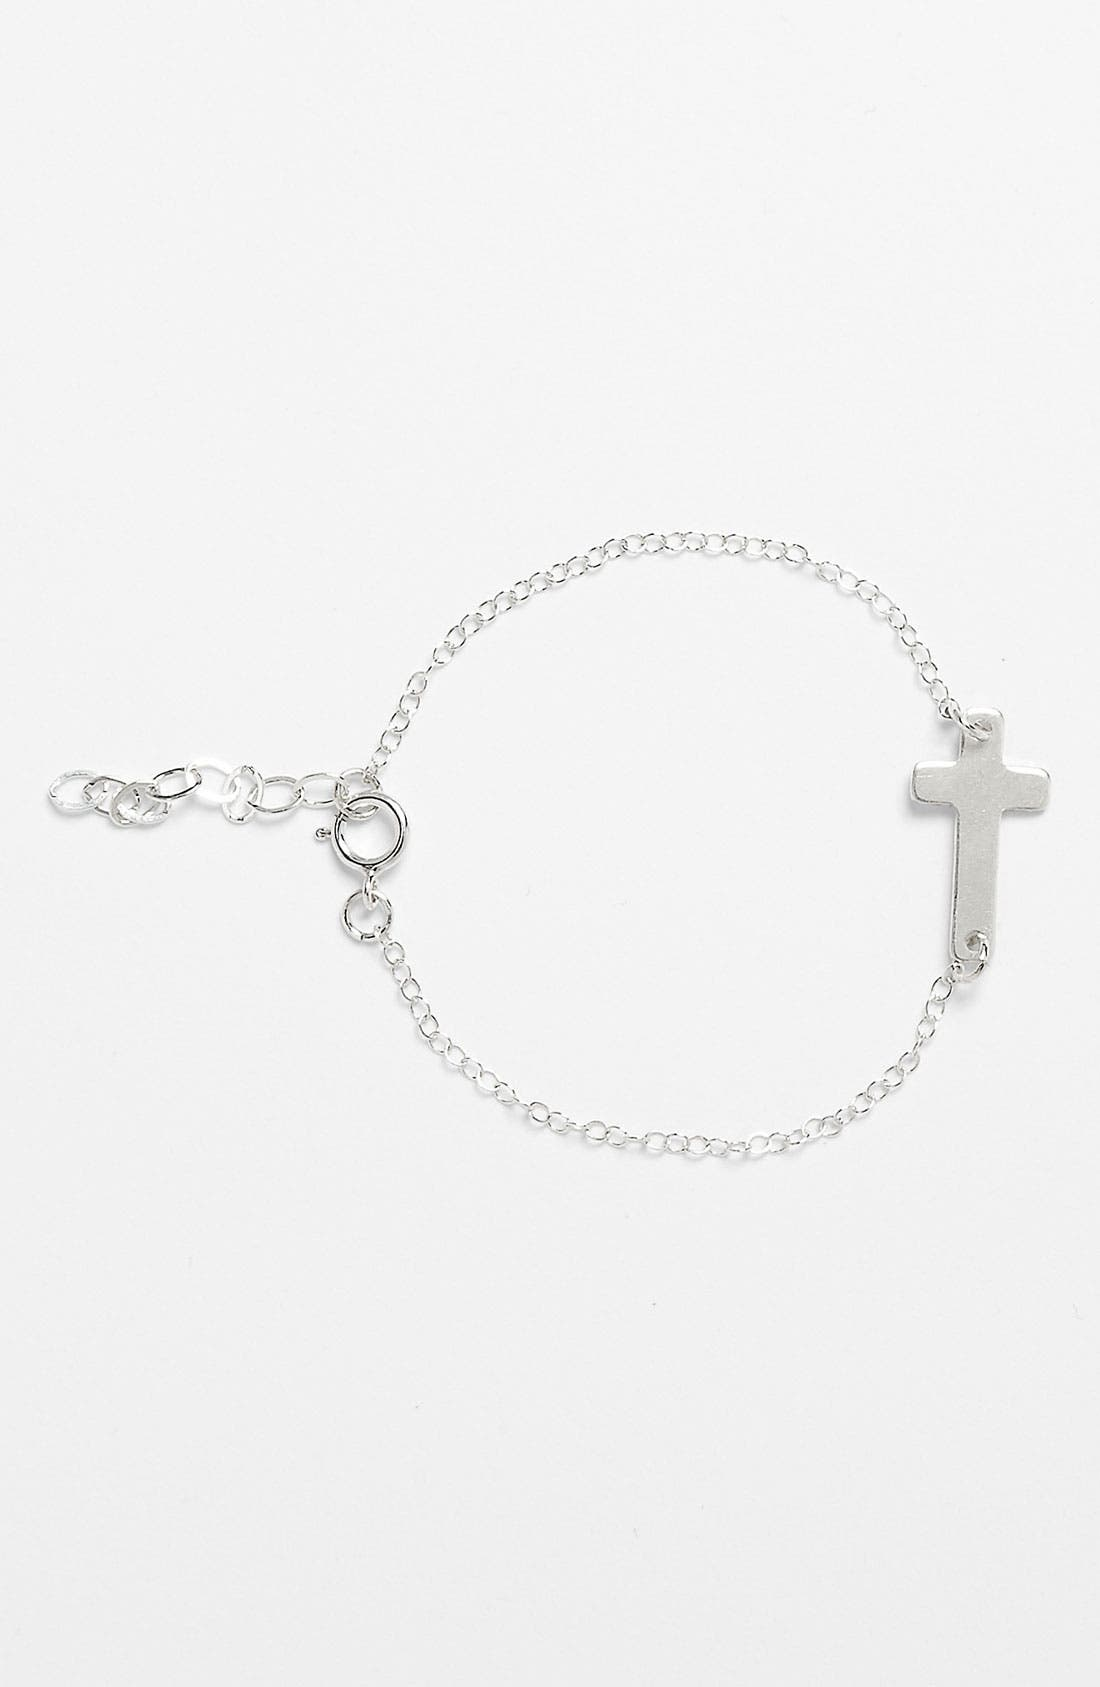 Alternate Image 1 Selected - Abela Designs Sideways Cross Bracelet (Girls)